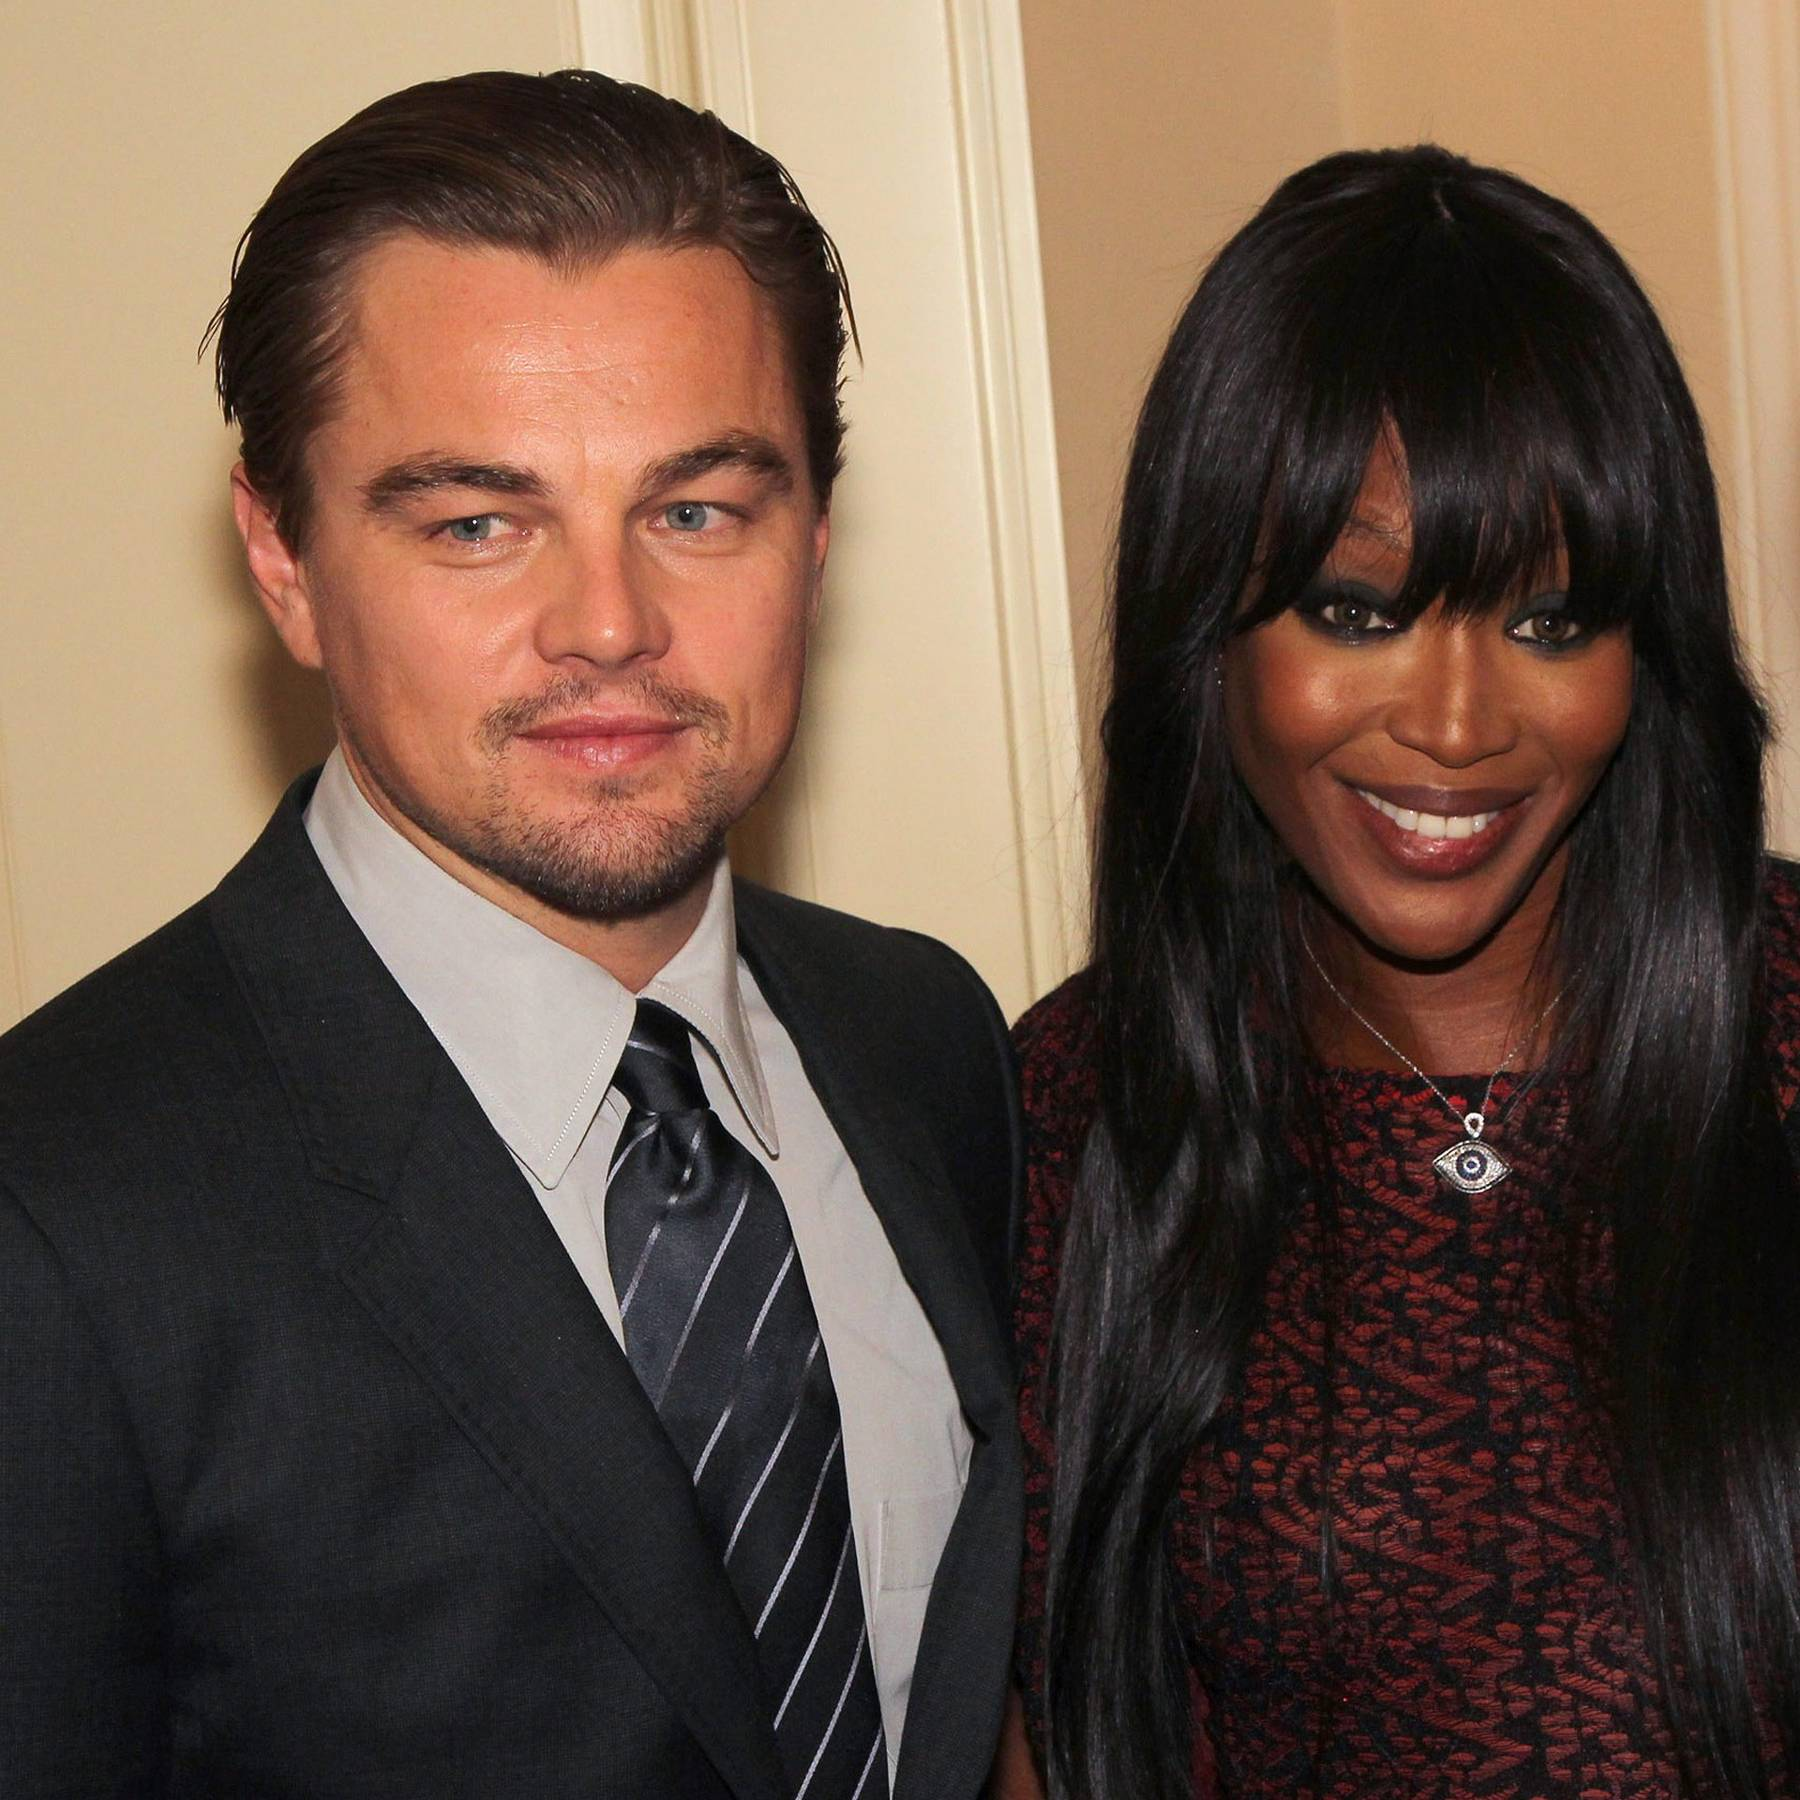 Is leonardo dicaprio dating anyone